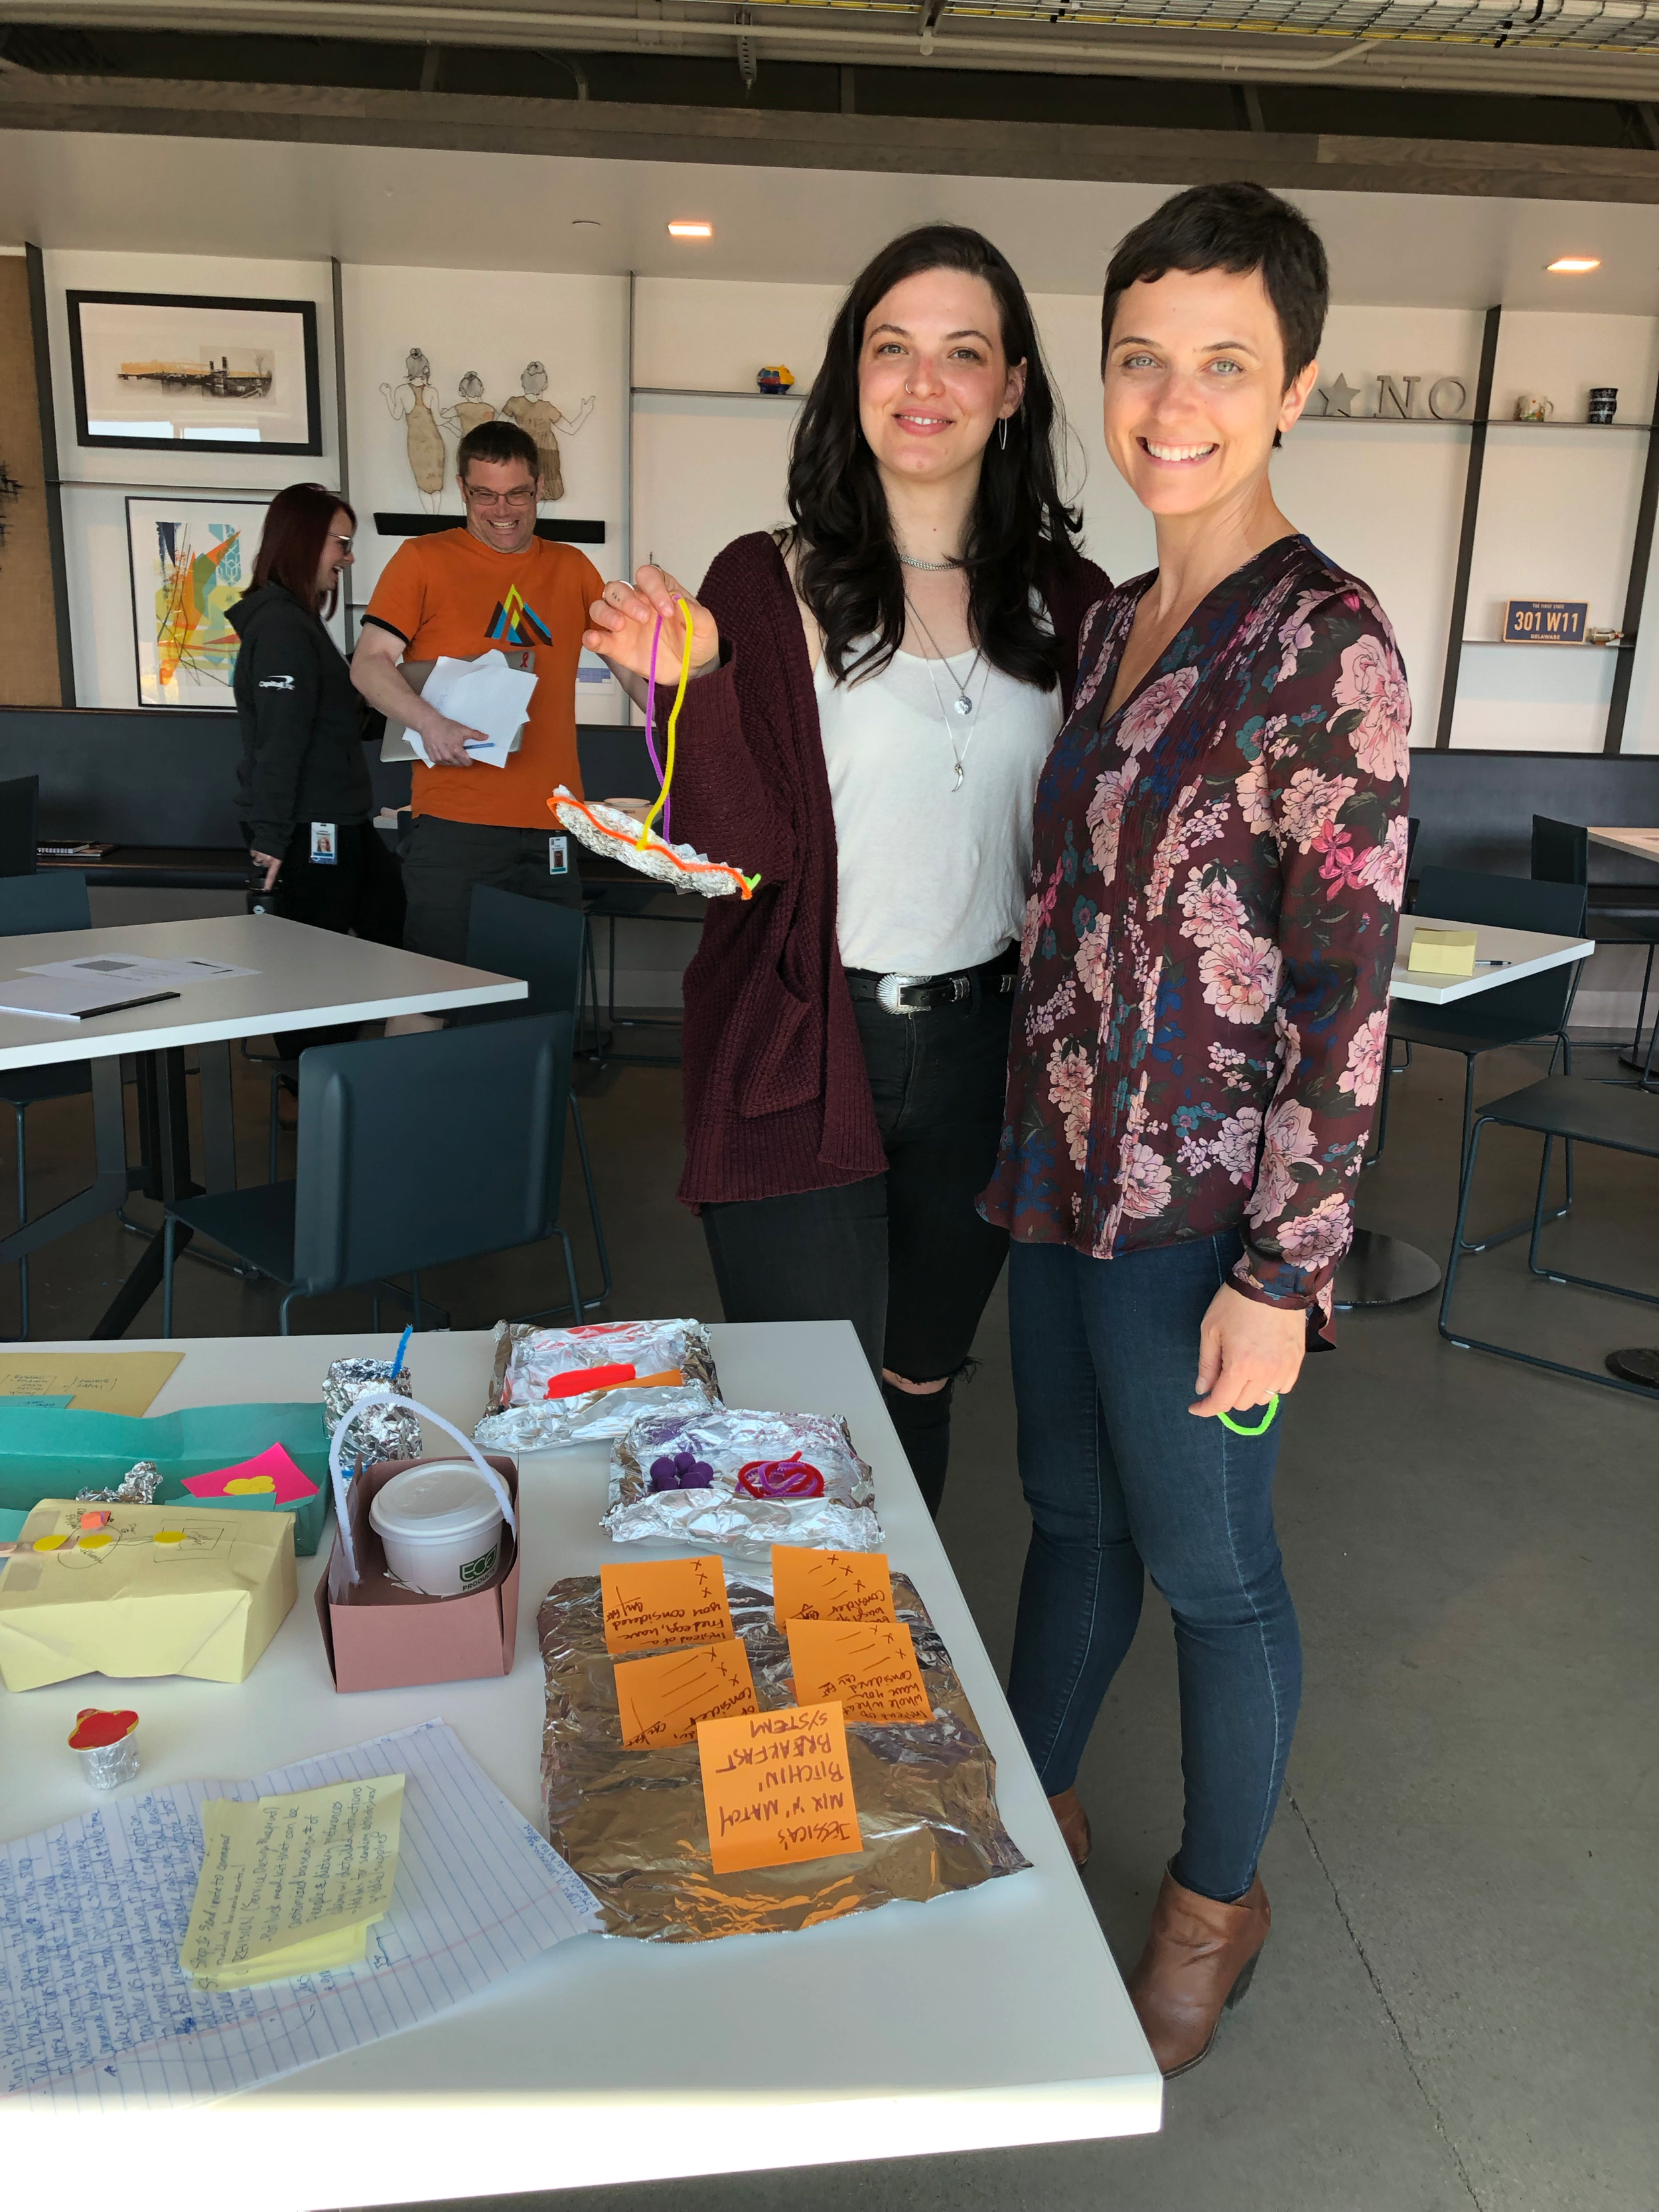 Co-collaborator Maria Doherty, and I looking at prototypes from the workshop - Thanks to Maria's product expertise, we were able to facilitate a Design Thinking workshop that was relevant to Capital One internal Design, Product, Tech and Content teams.